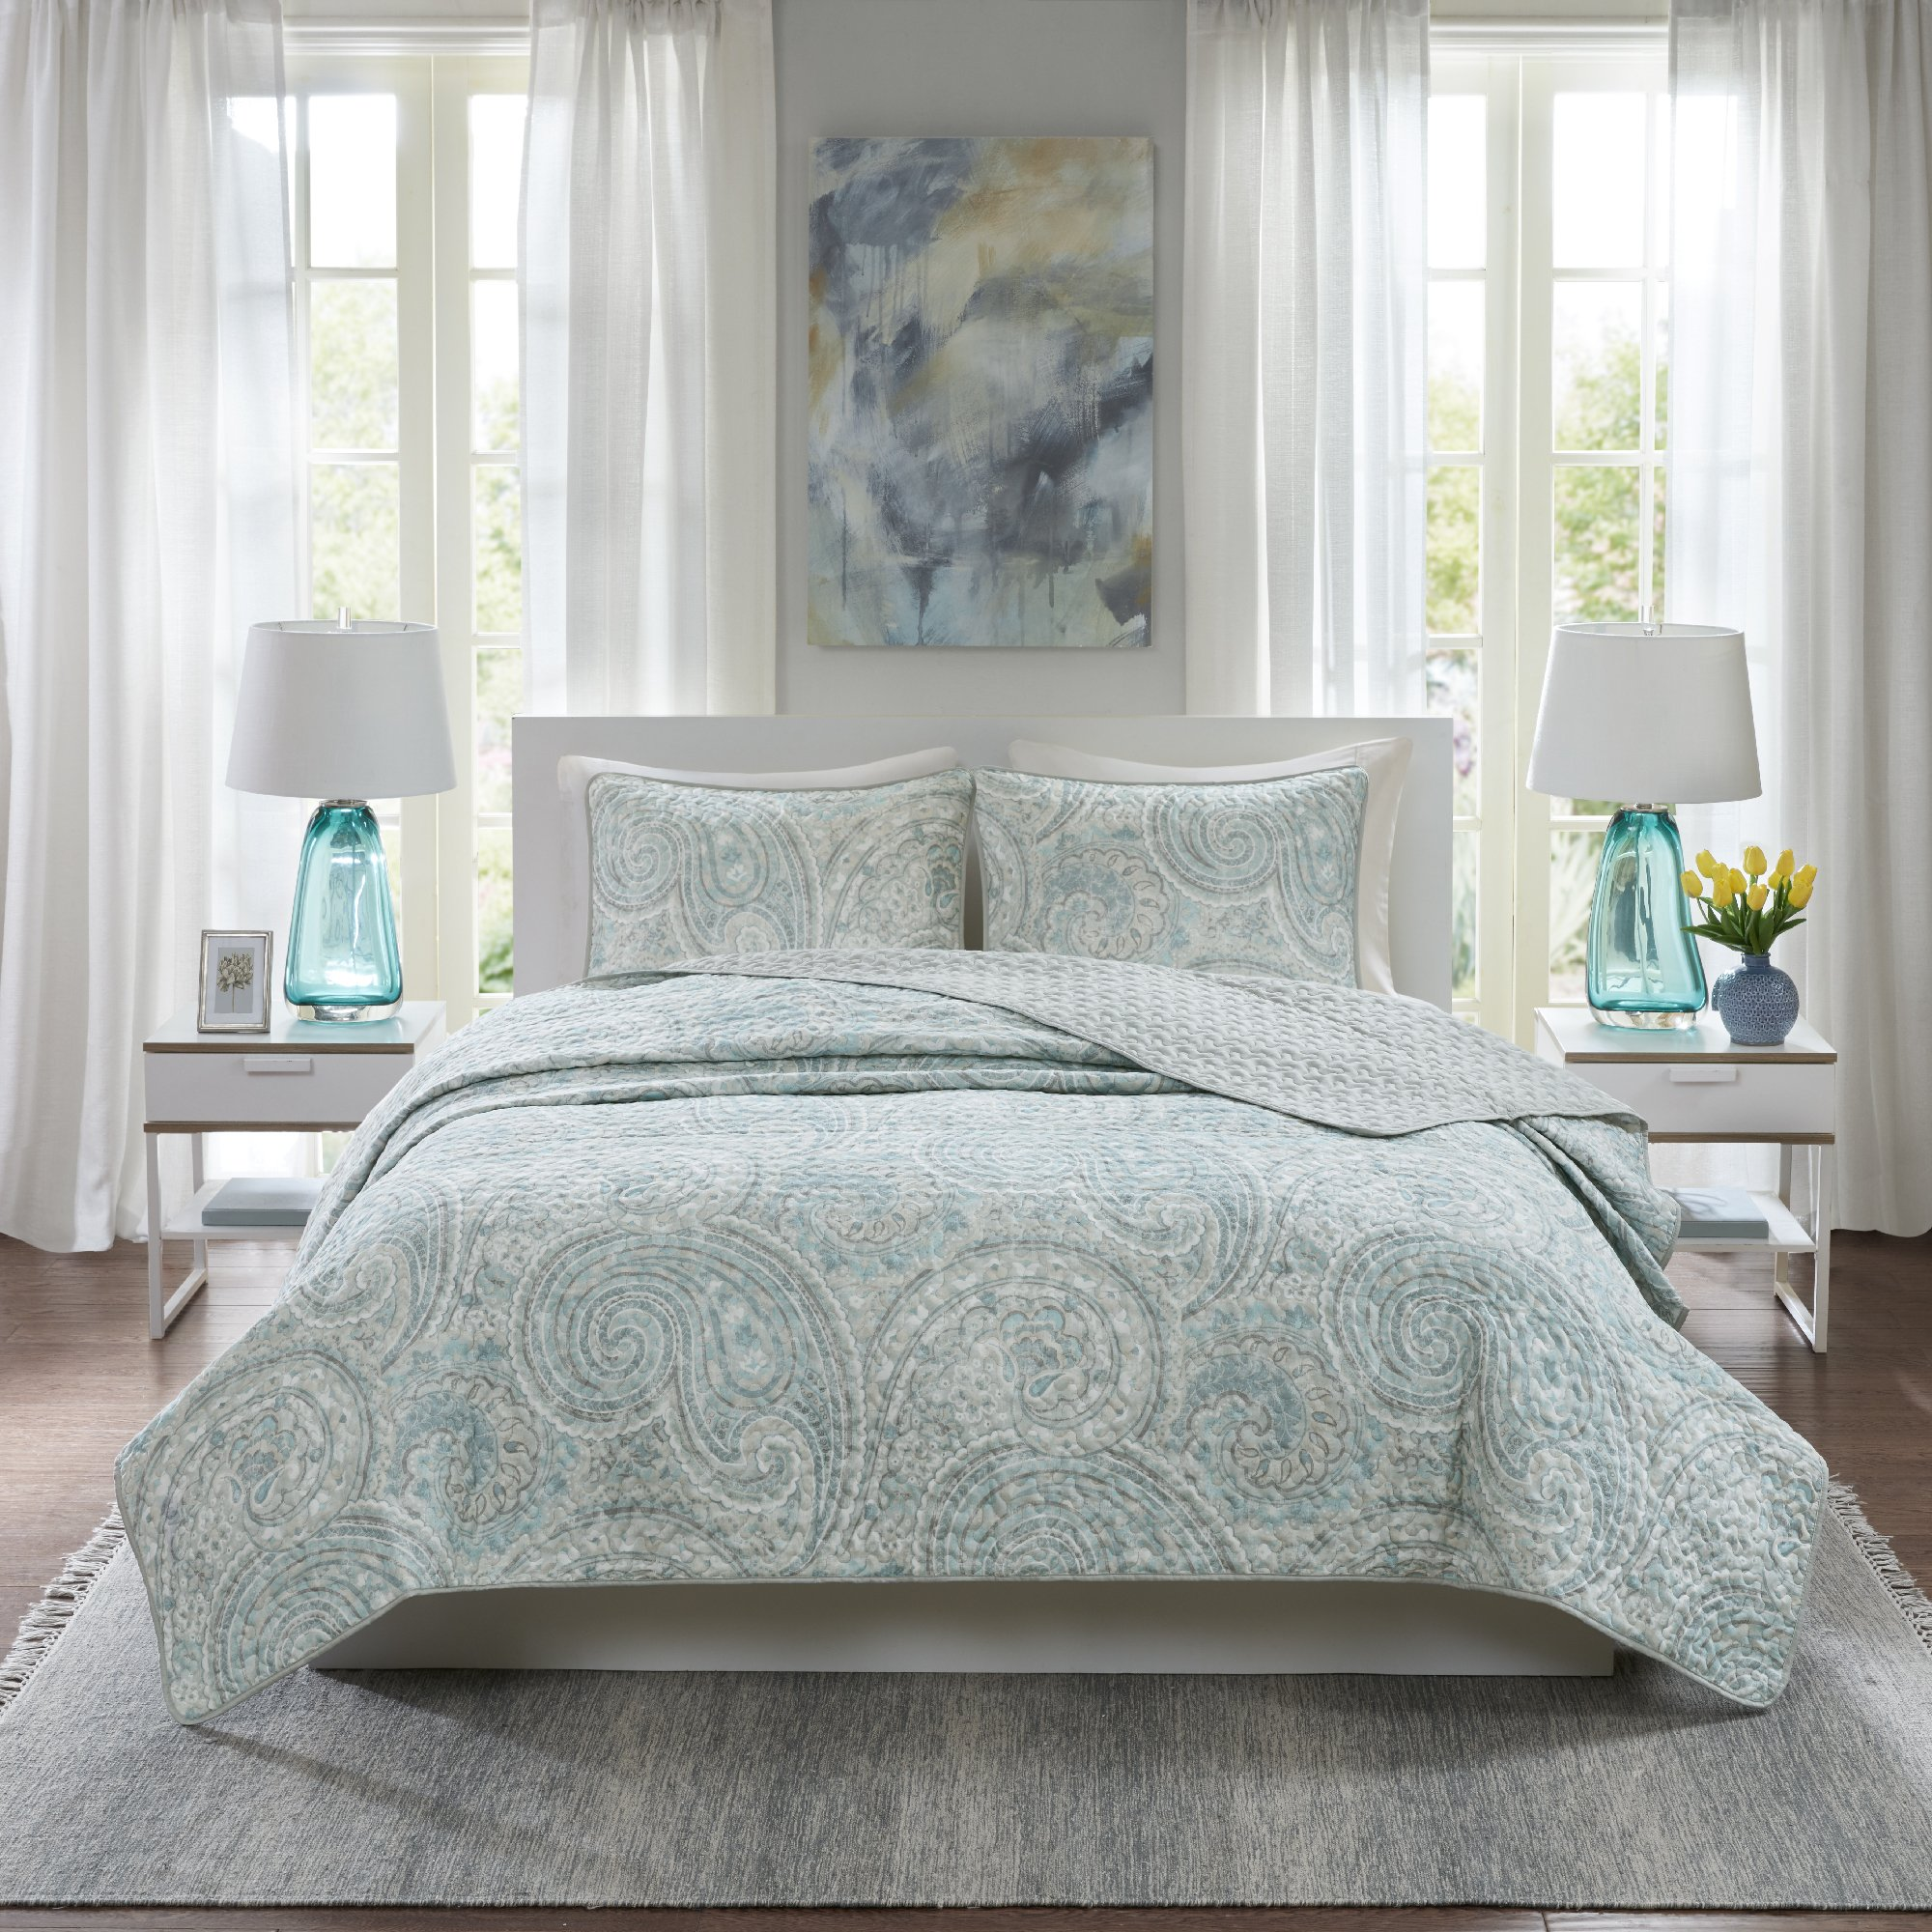 Comfort Spaces Kashmir Hypoallergenic All Season Lightweight Filling Paisley Print Girls 3 Piece Quilt Coverlet Bedspread Bedding Set, King, Blue Grey by Comfort Spaces